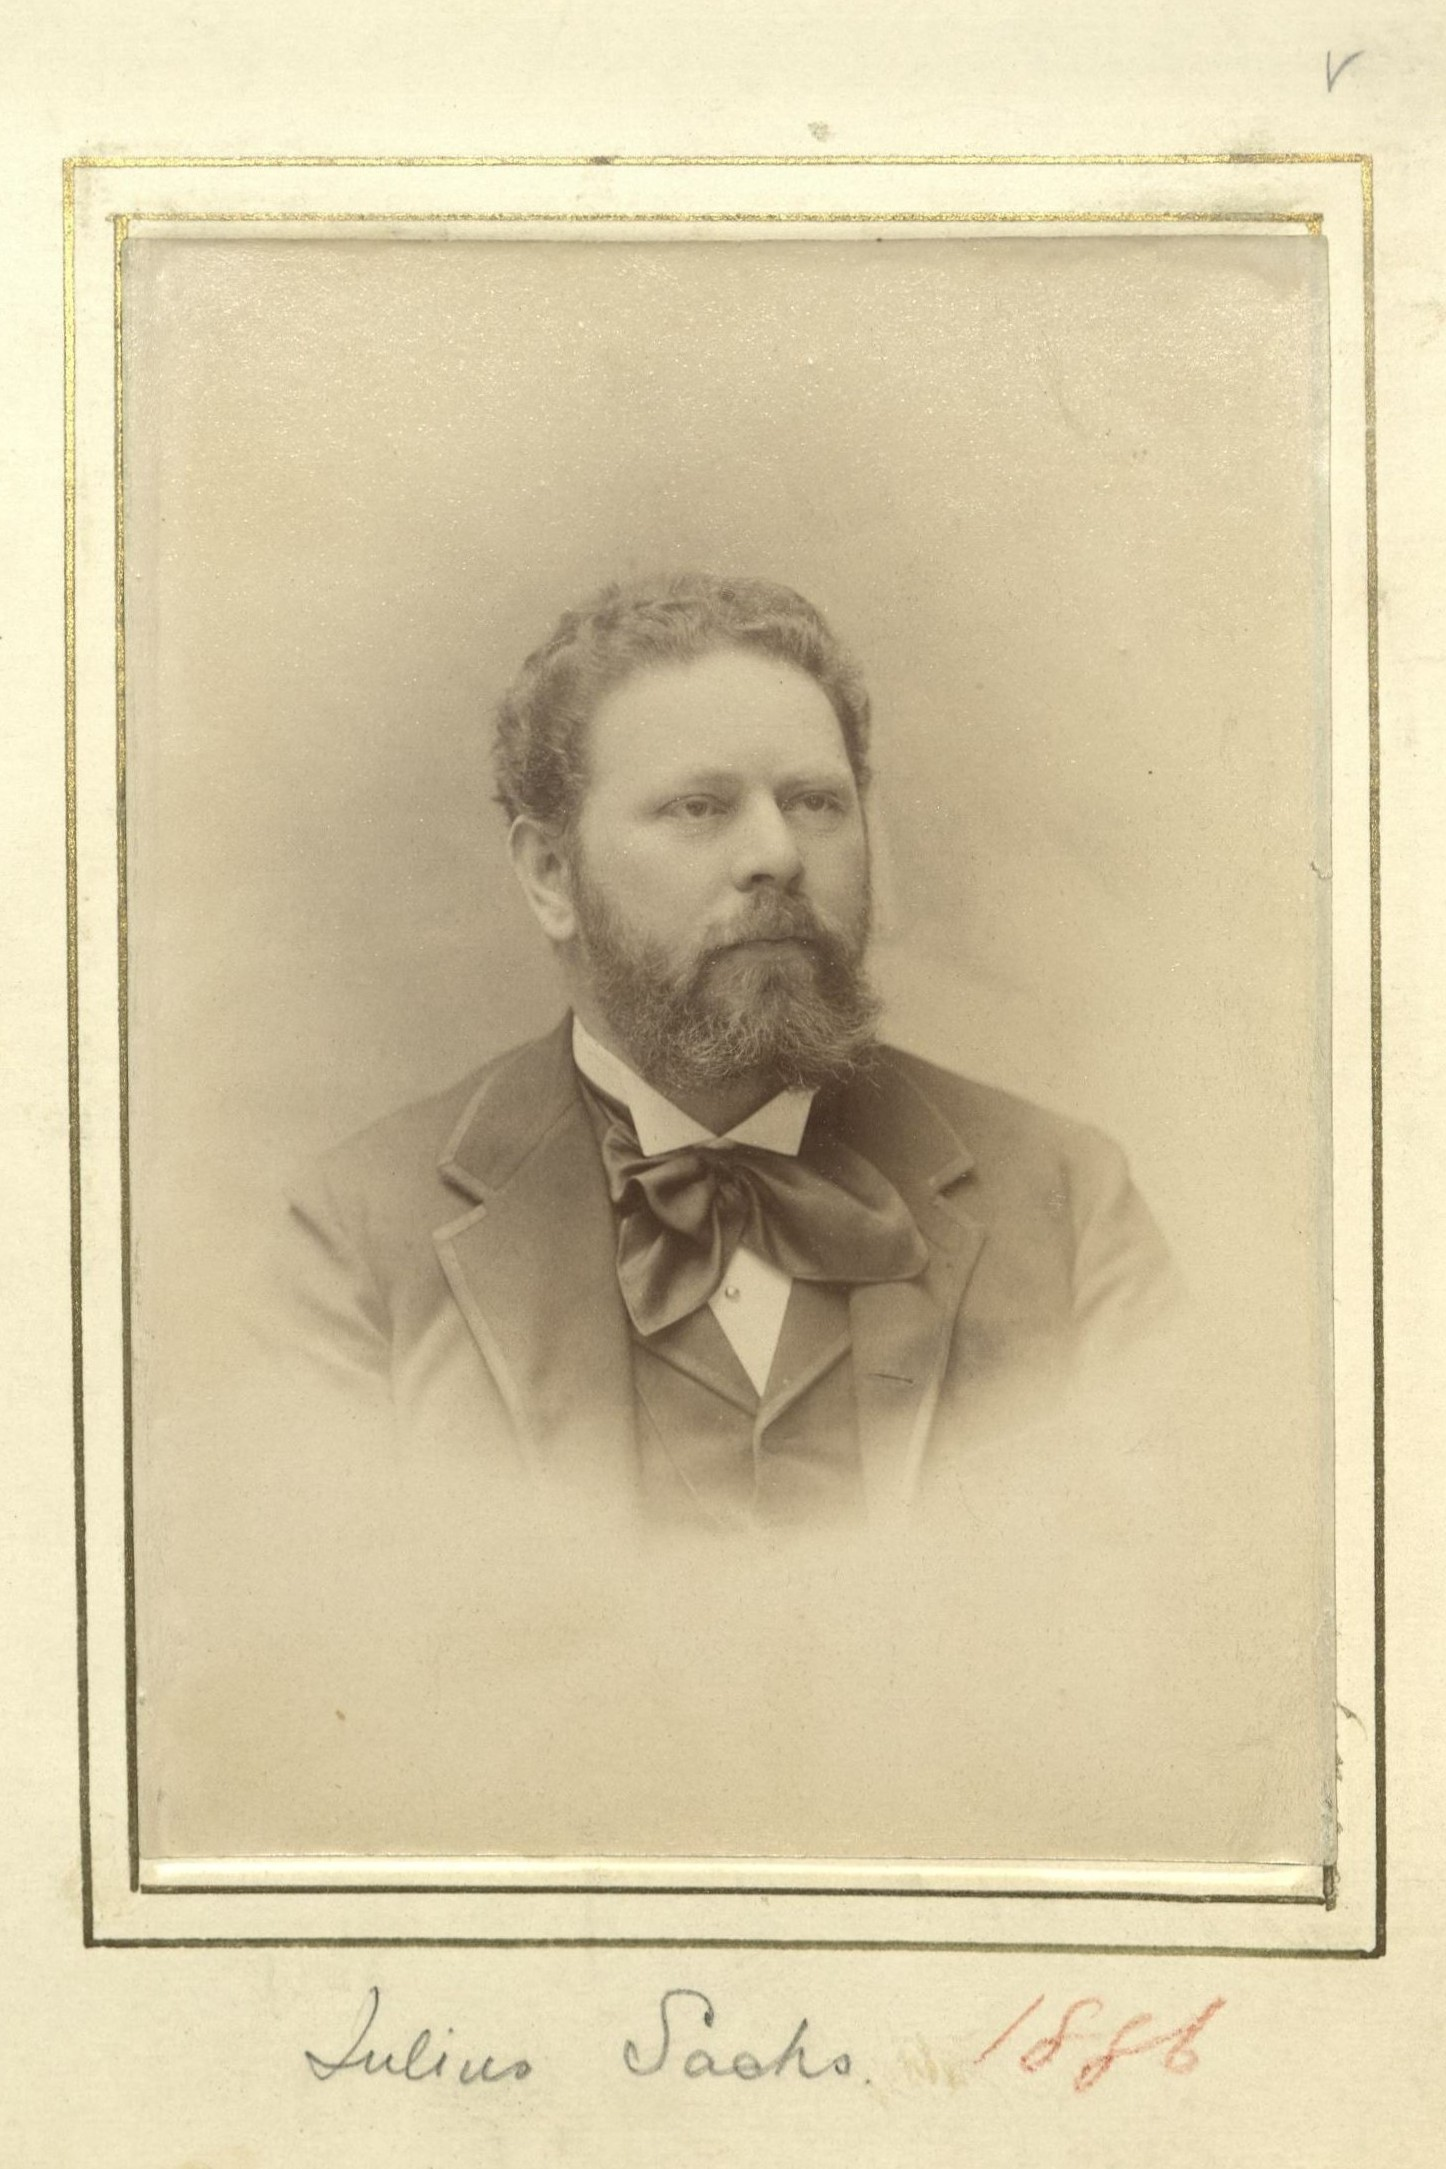 Member portrait of Julius Sachs